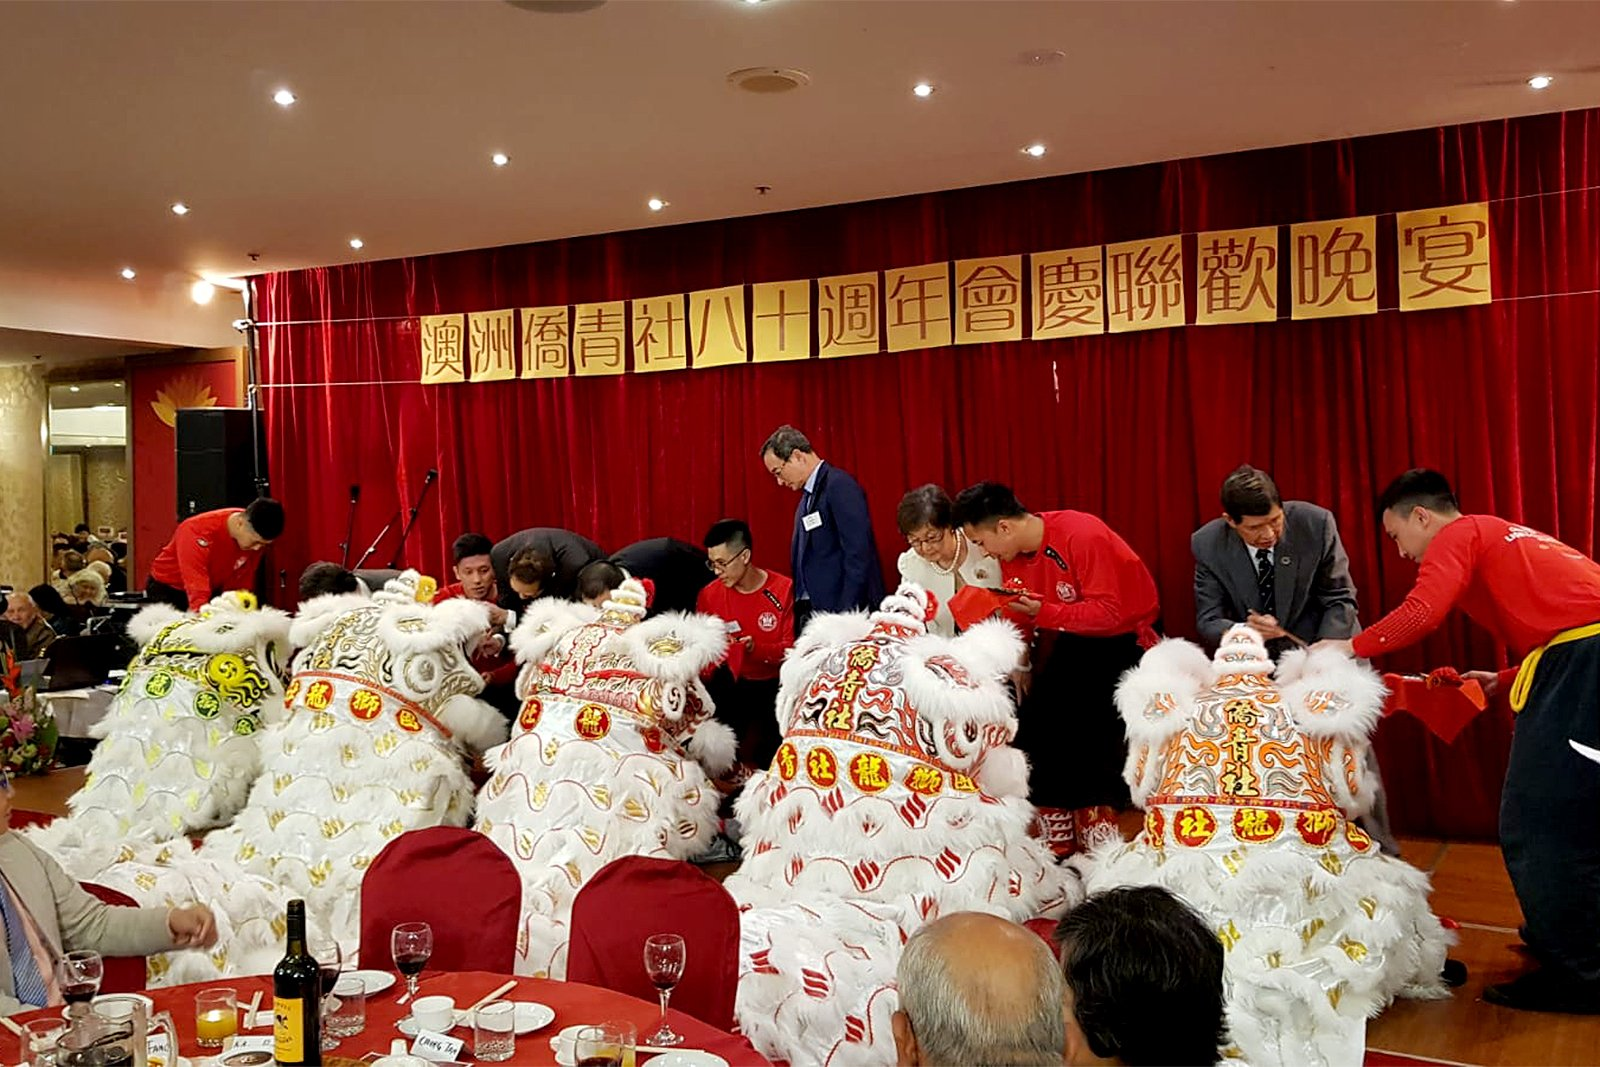 CYL Lion Dance Eyedotting Ceremony